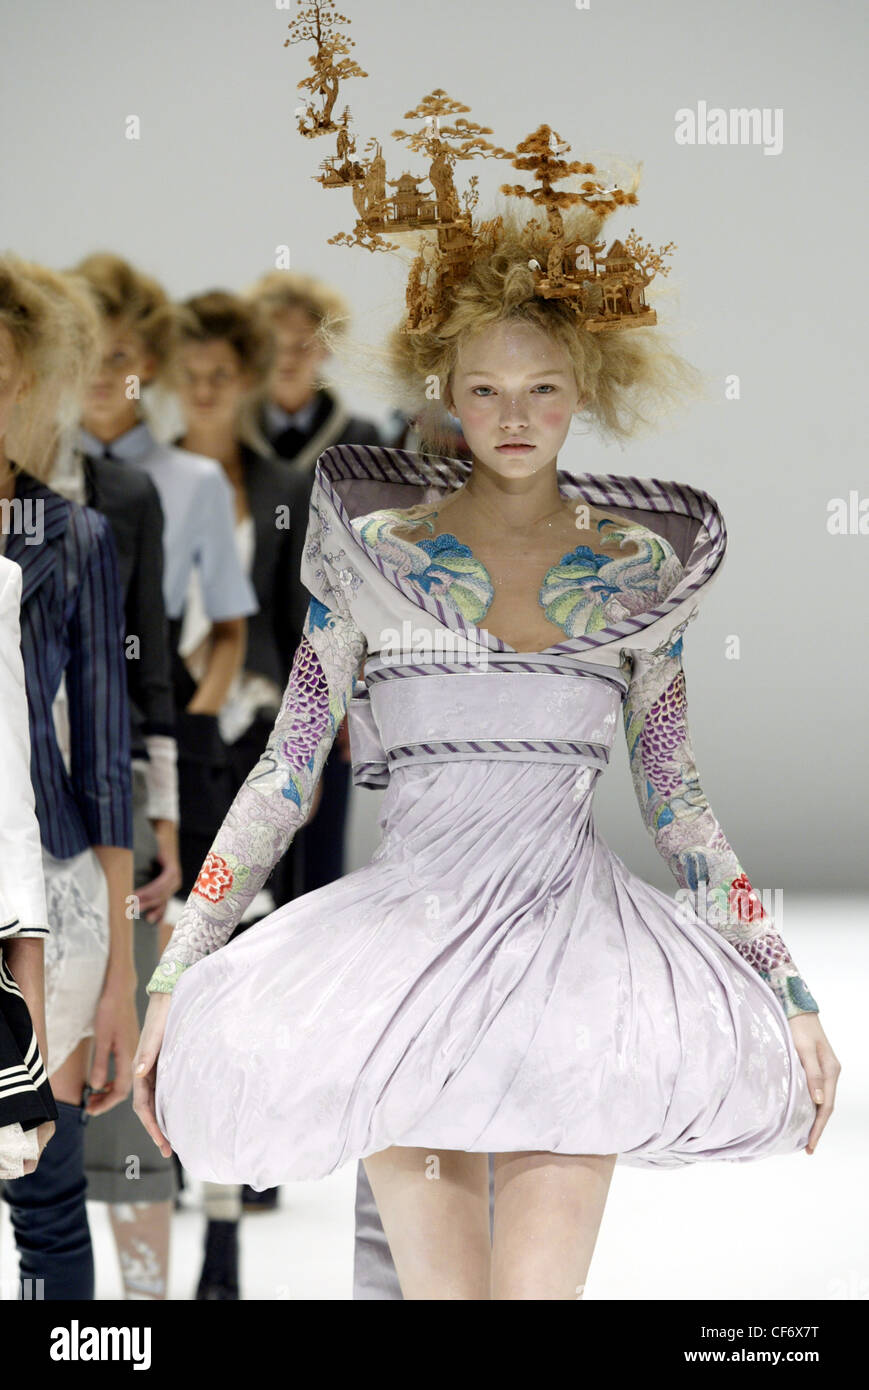 b24791a6a19e Alexander McQueen Paris Ready to Wear Spring Summer Model Gemma Ward blonde  hair back combed and messy holding delicate cork